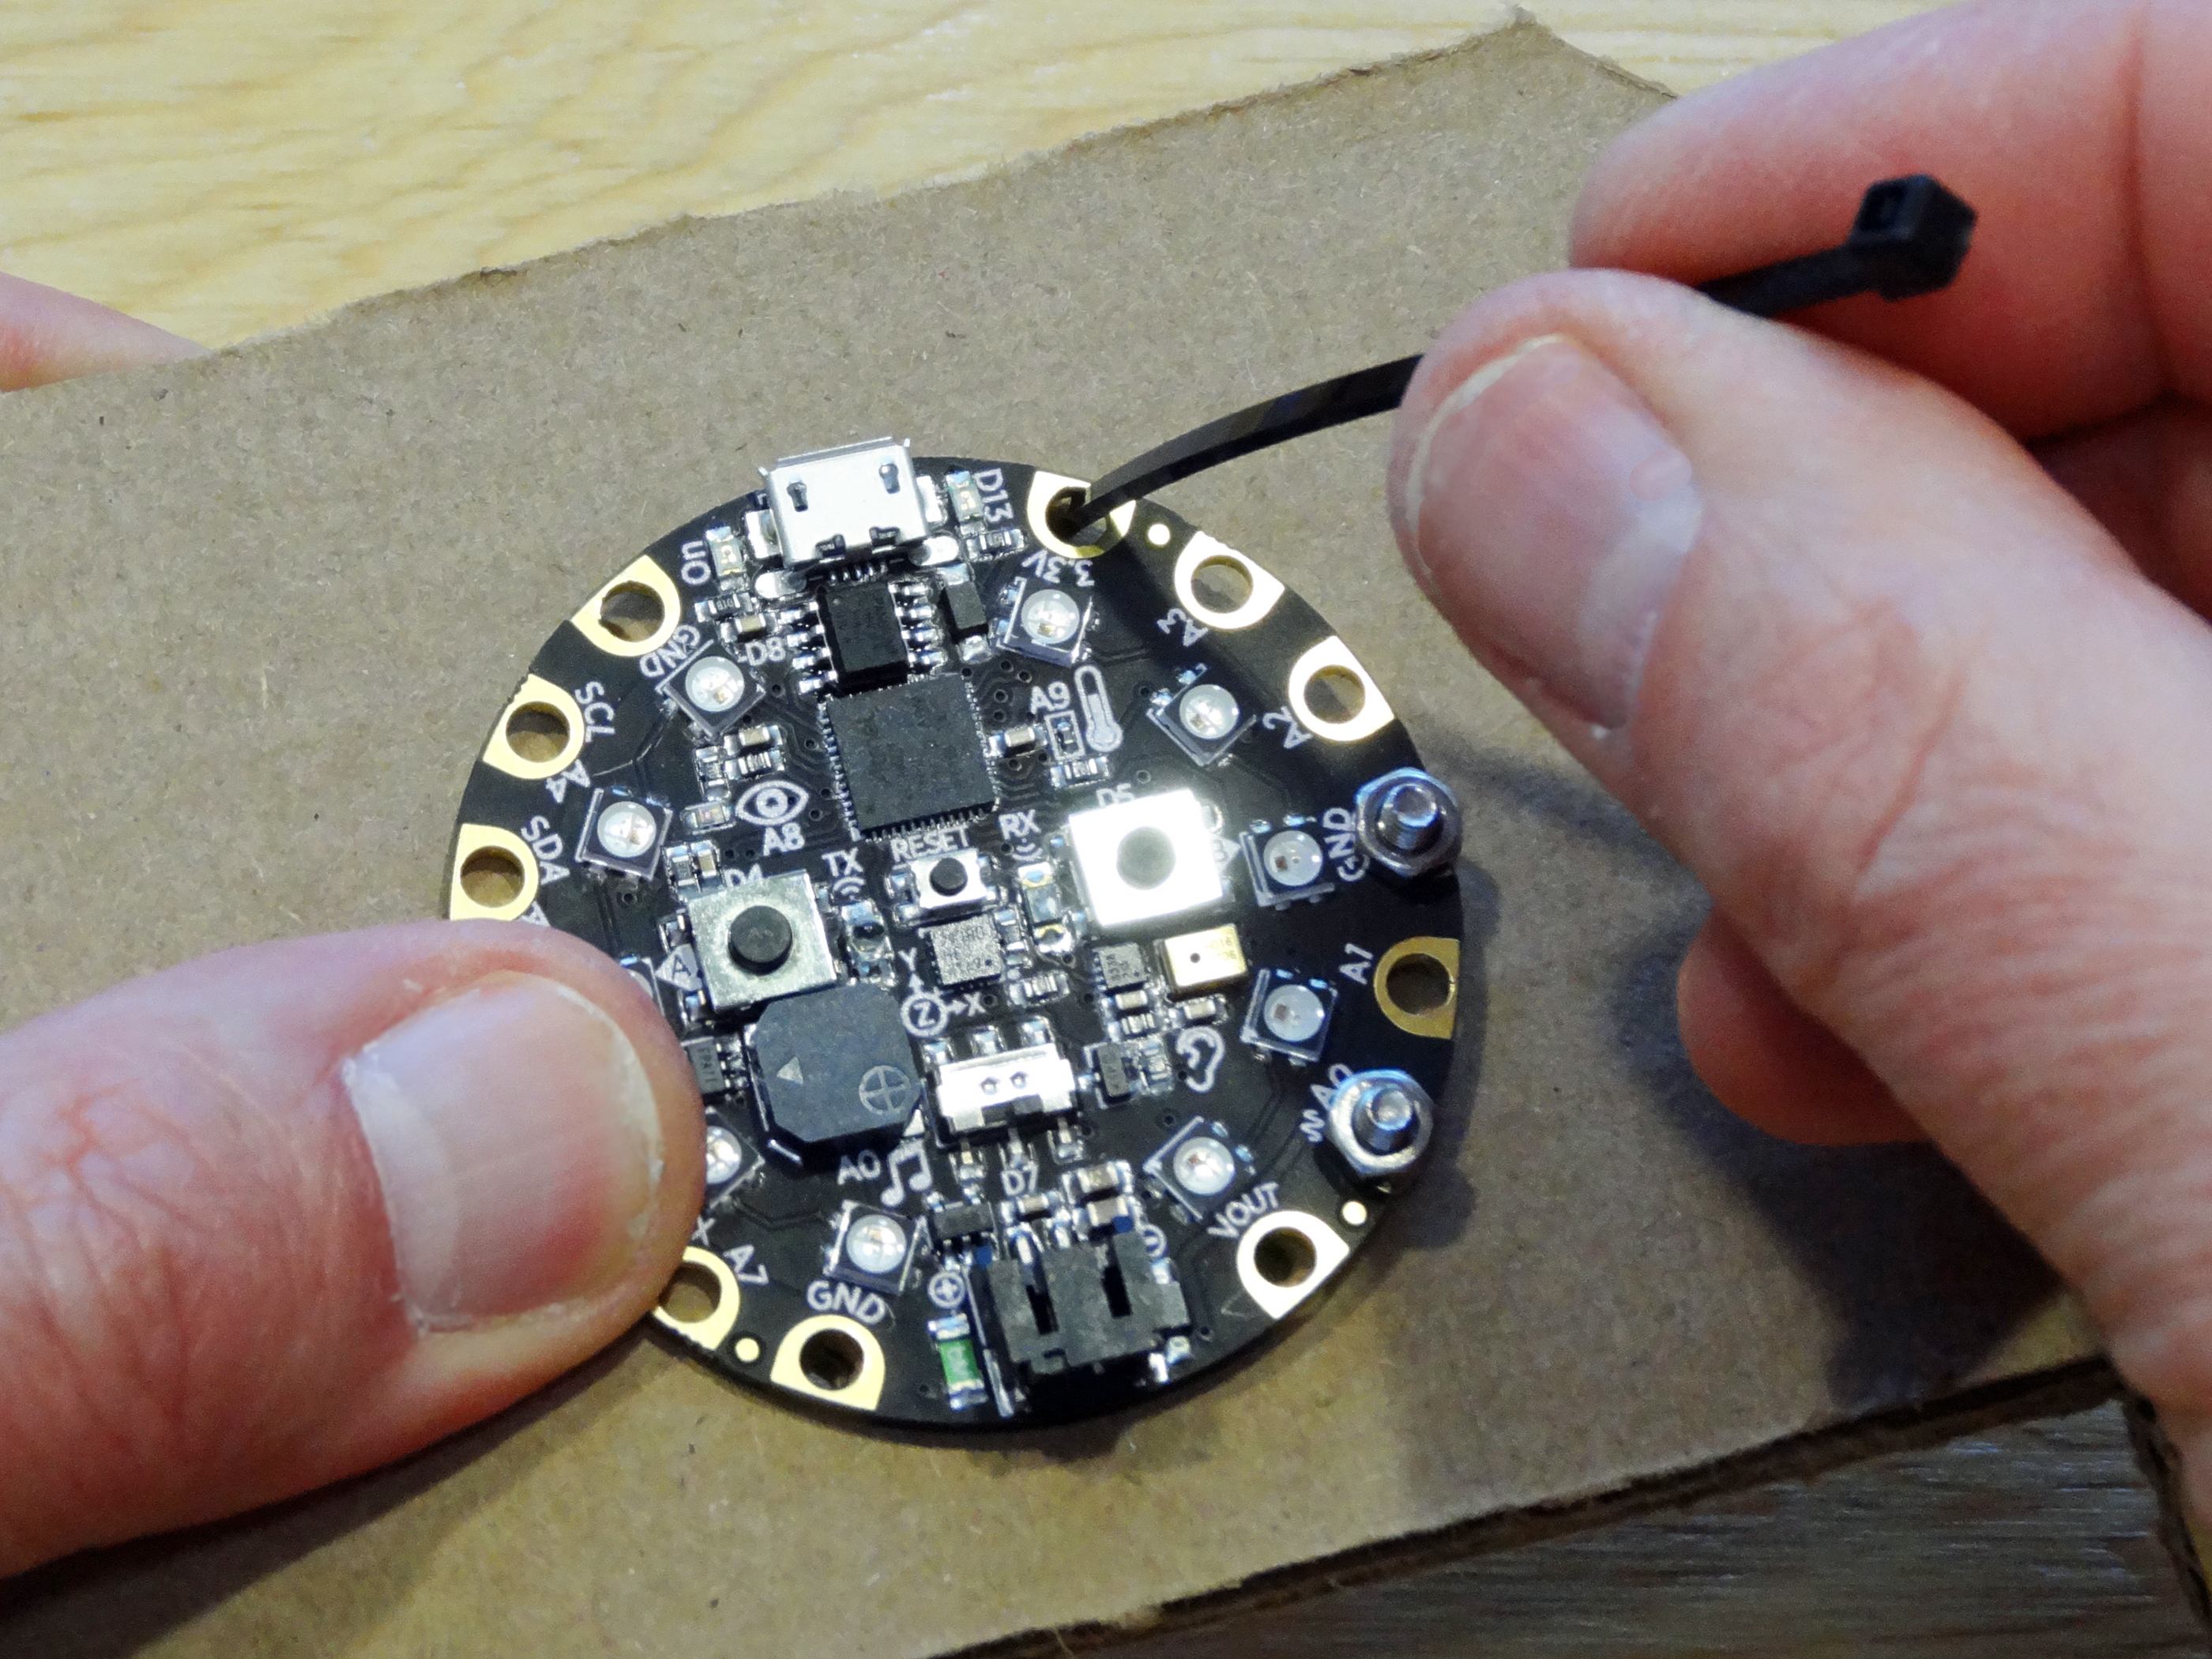 adafruit_products_attach_06.jpg